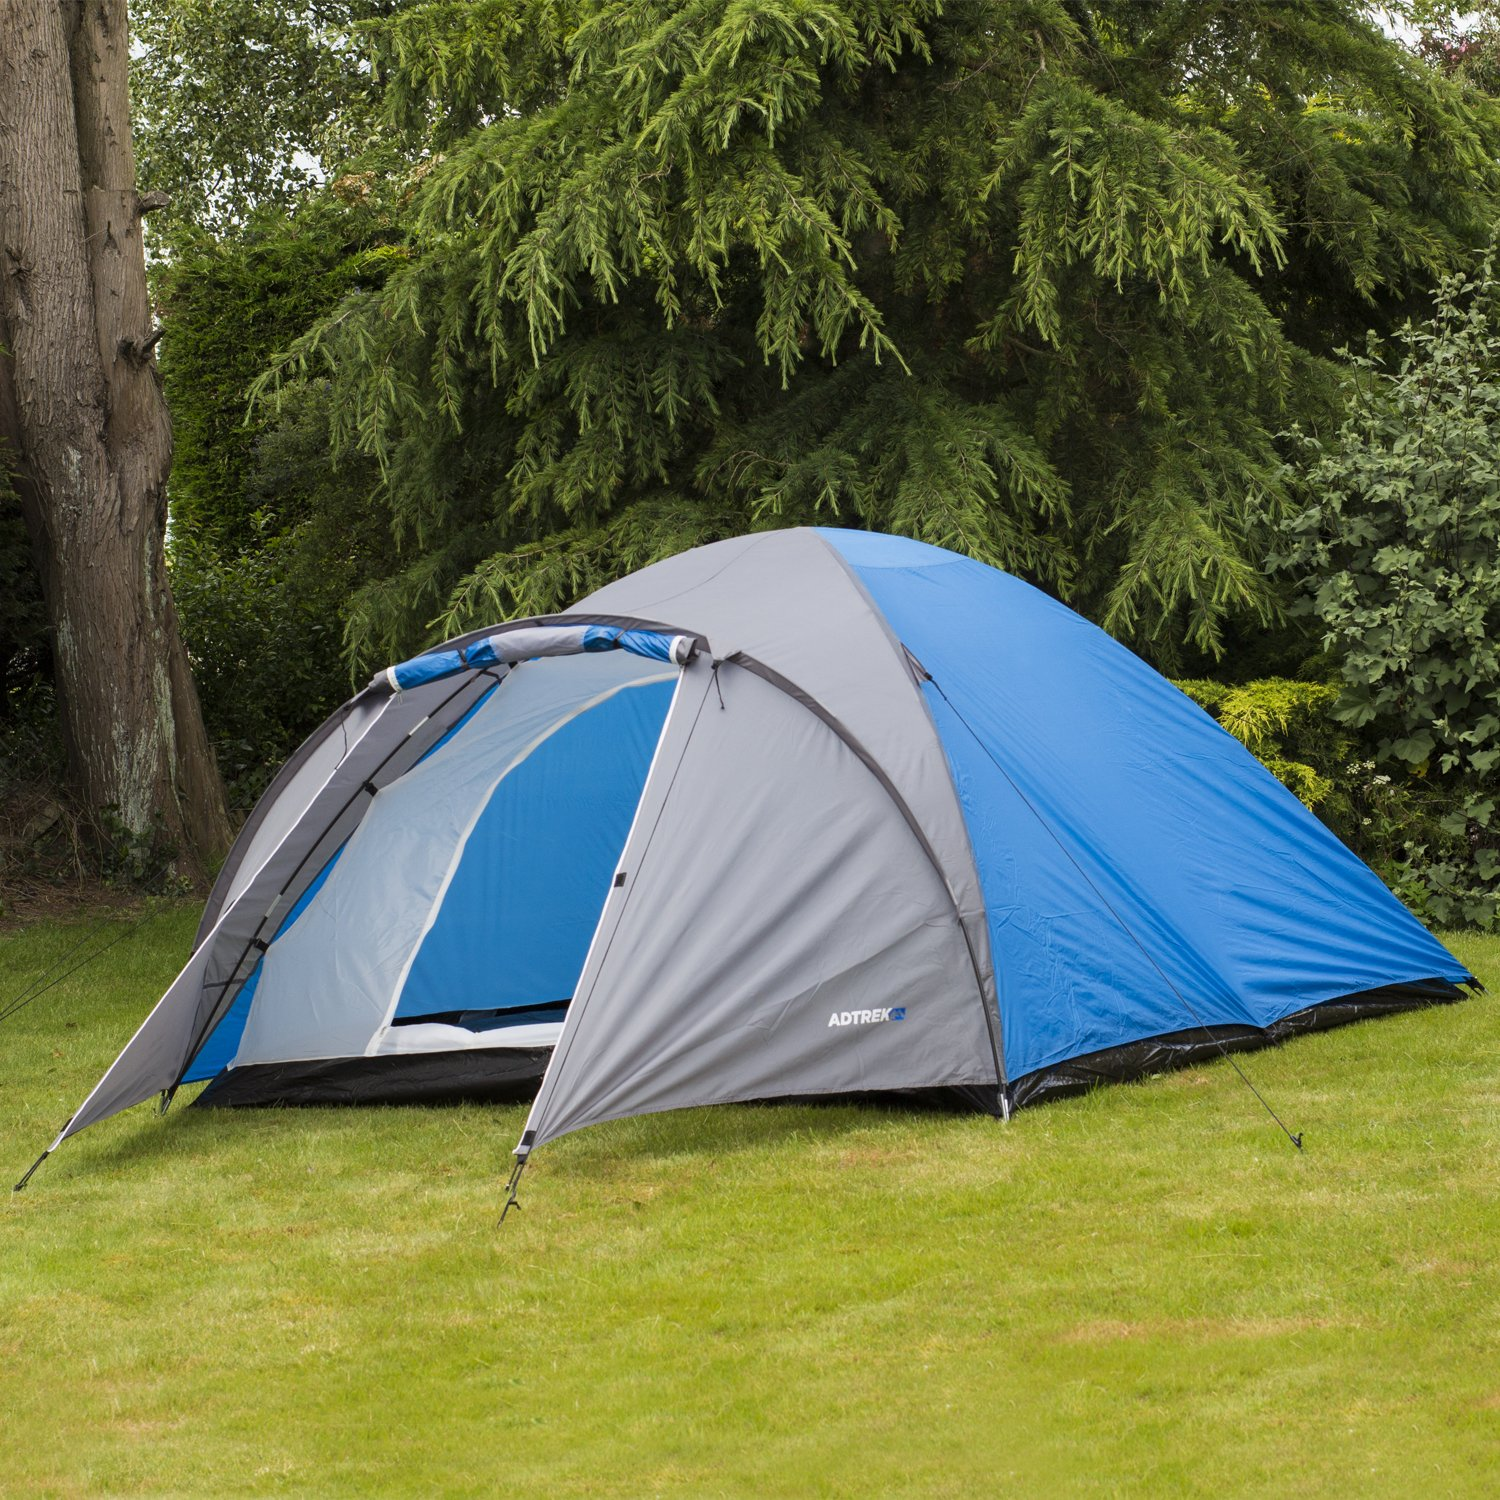 Adtrek Double Skin Dome 4 Man Berth C&ing Festival Family Tent & North Gear Camping Pop Up 4 Man Tent Blue: Amazon.co.uk: Sports ...